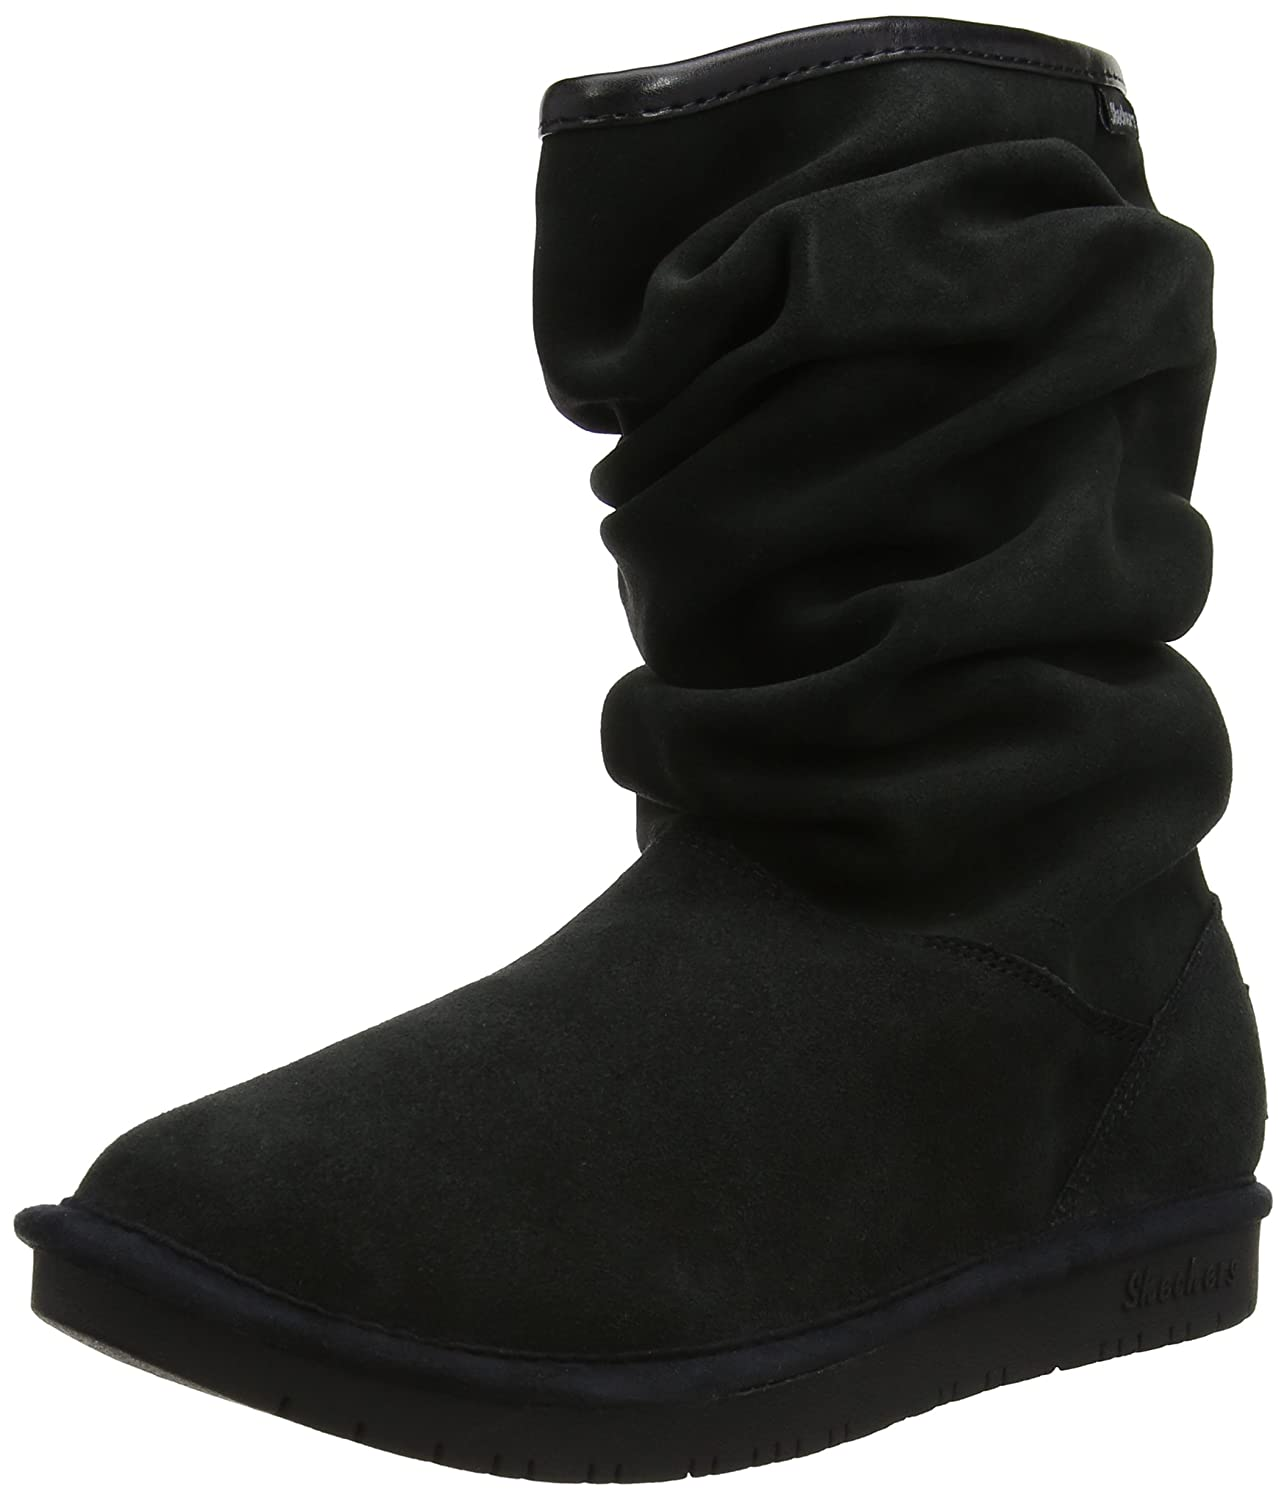 cd6b15e7074 Skechers Women's Shelby's-Helsinki Snow Boot